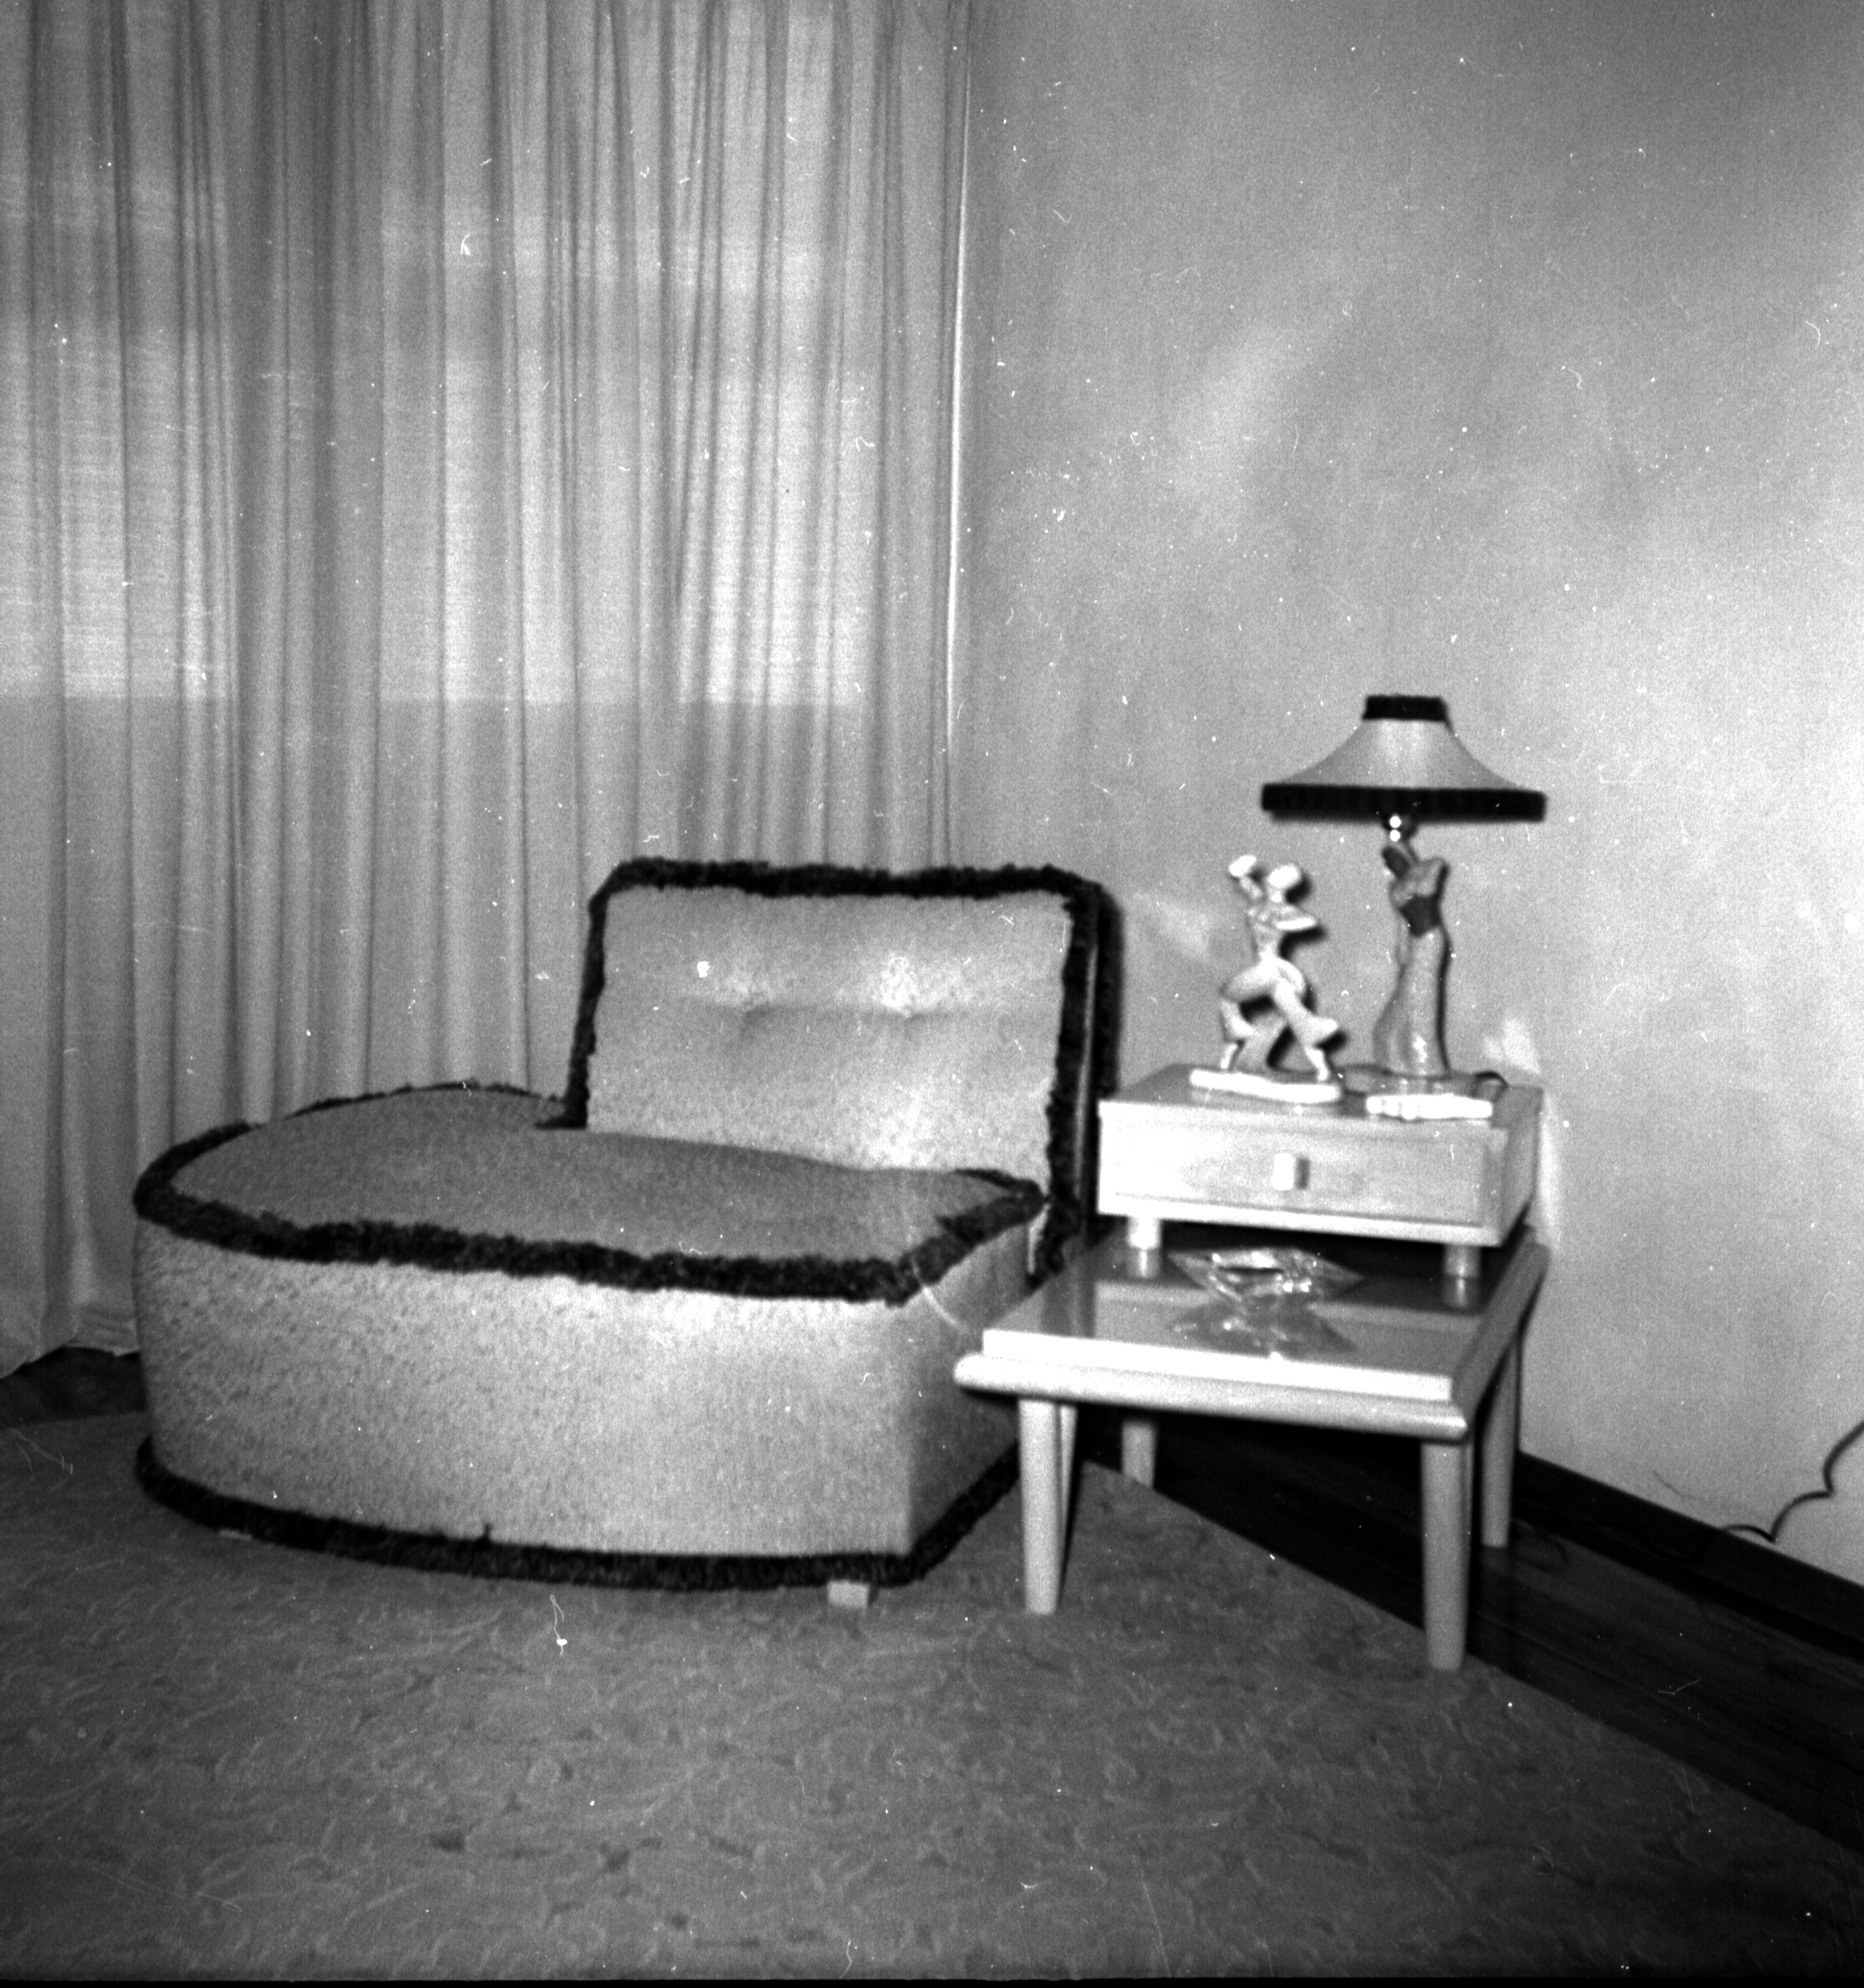 Best Love Seats For One Home Decor Snapshots 1951 Flashbak This Month